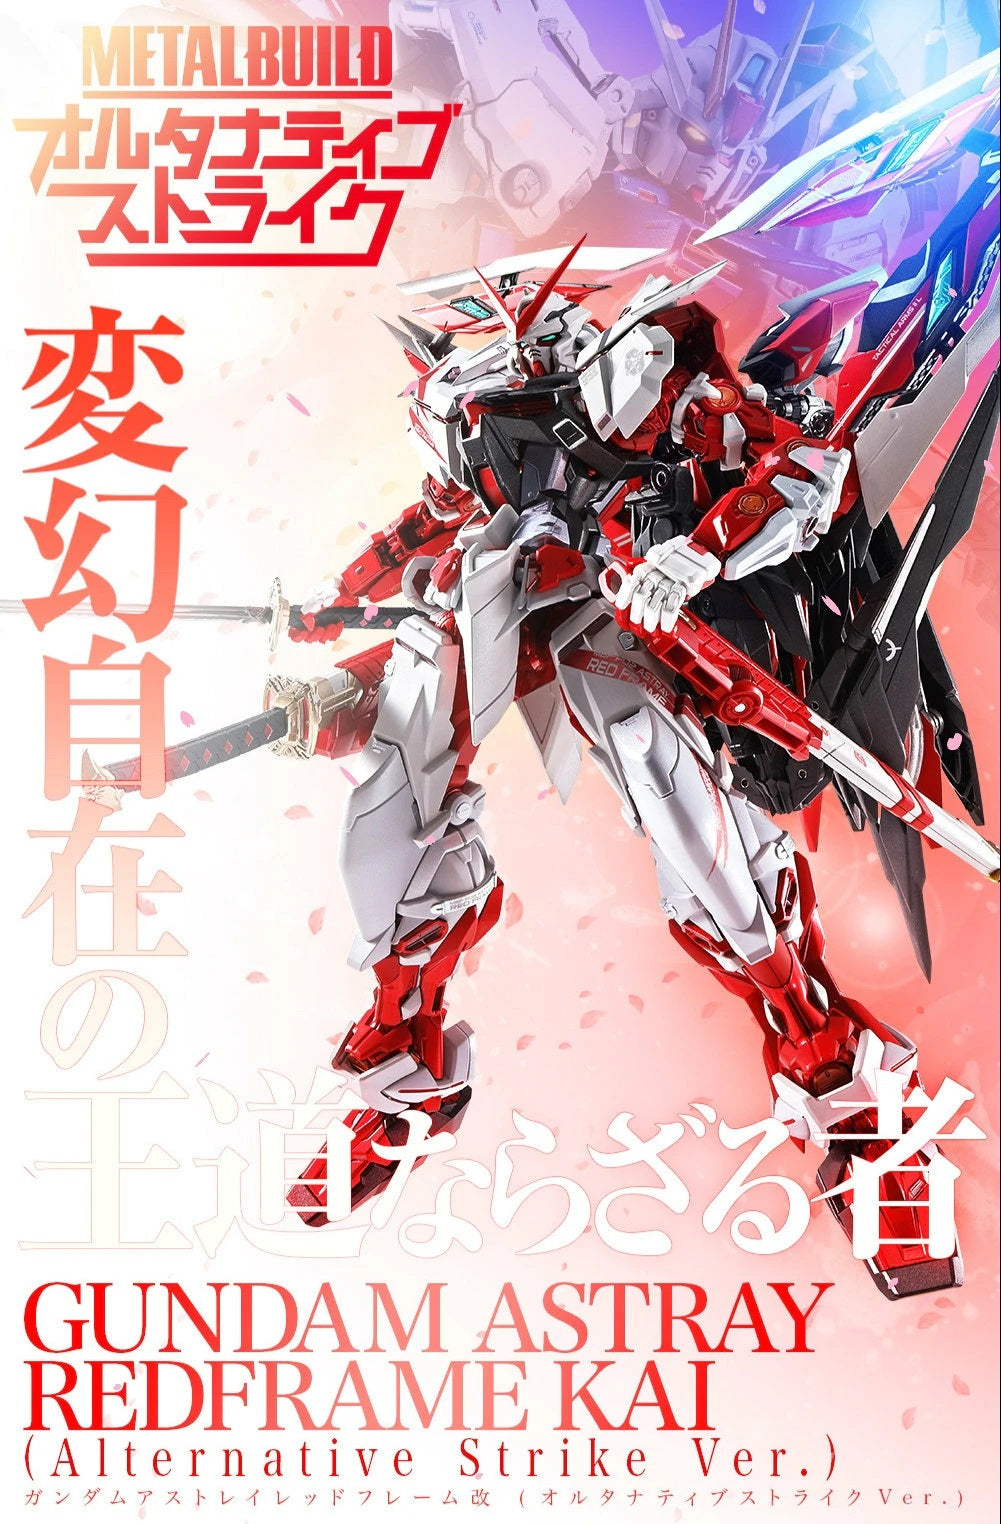 Bandai Metal Build Gundam Astray Red Frame KAI